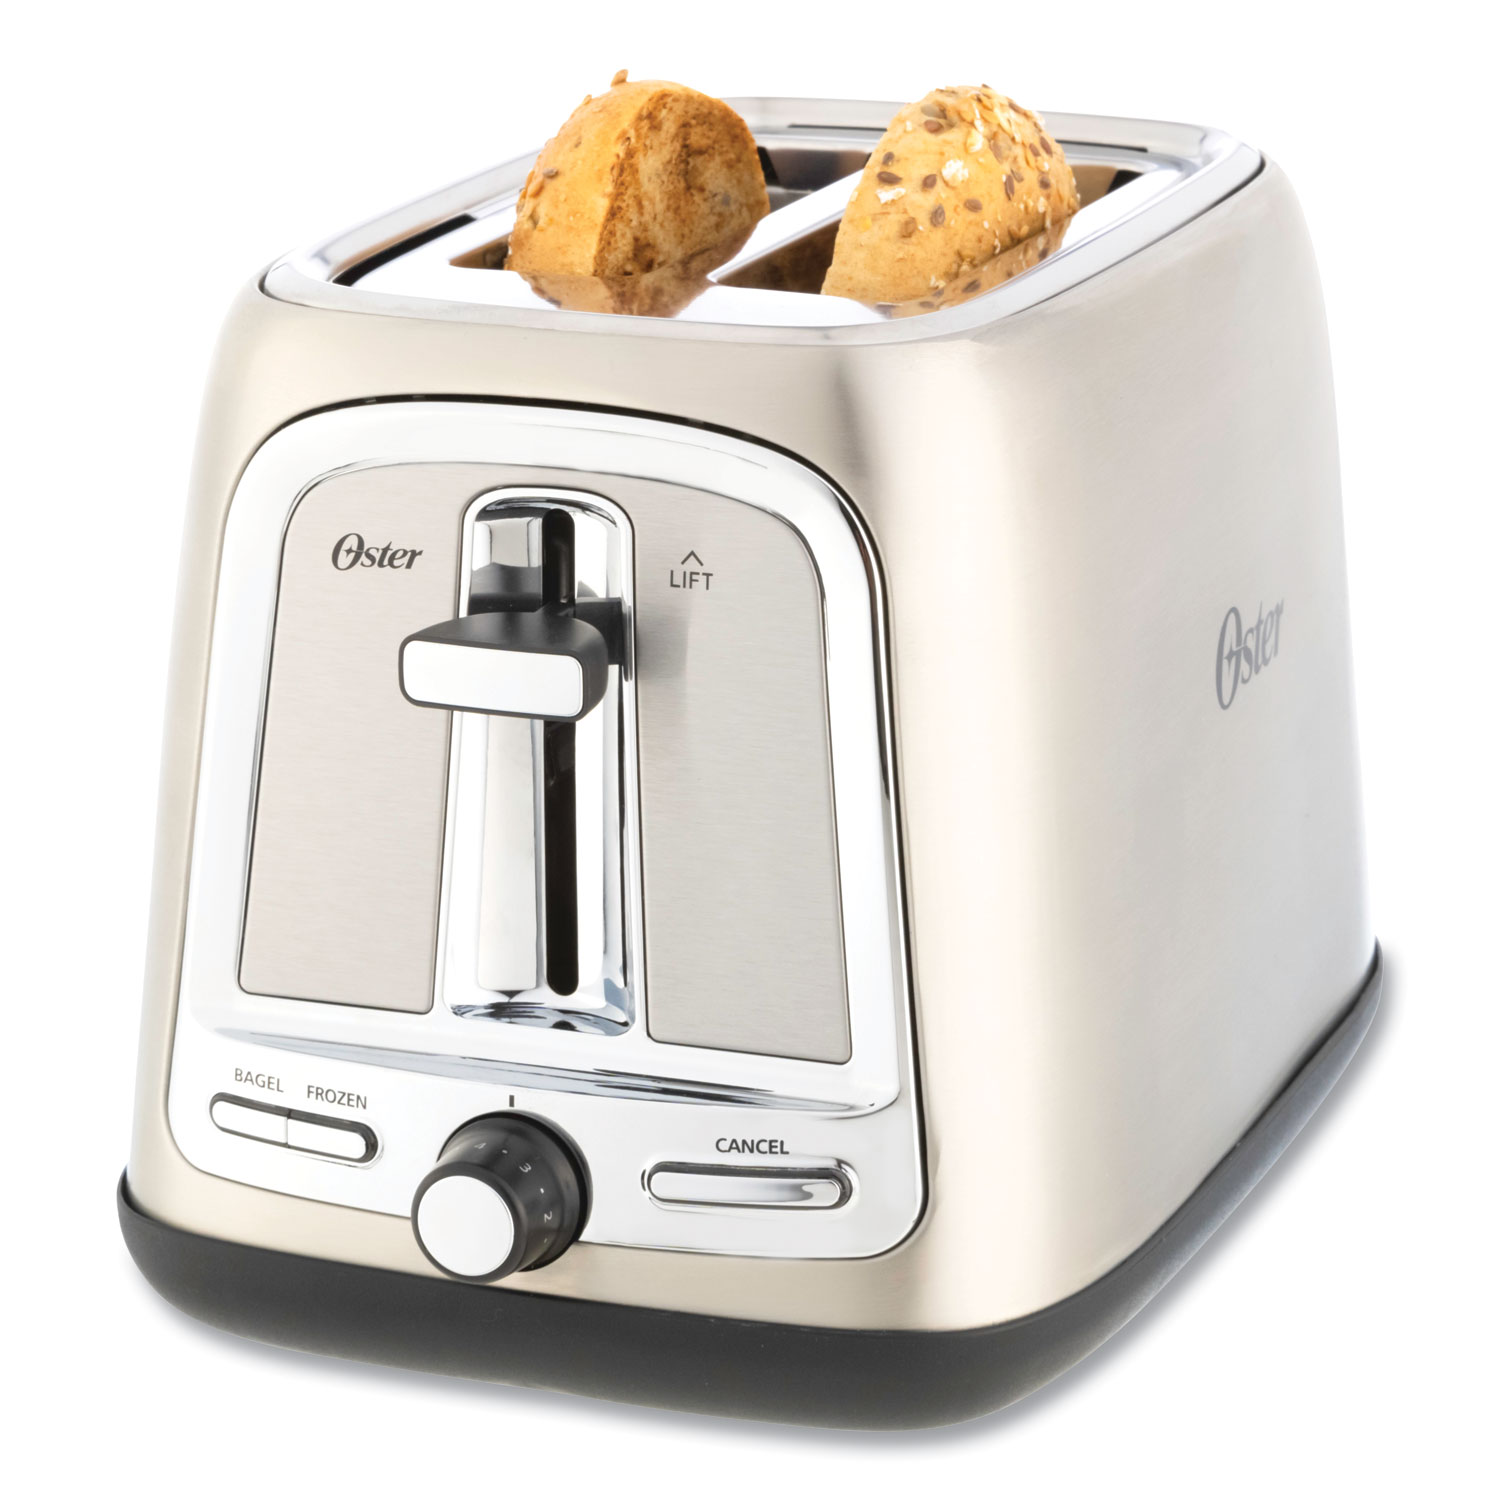 Oster® Extra Wide Slot Toaster, 2-Slice, 7.5 x 11 x 8, Stainless Steel